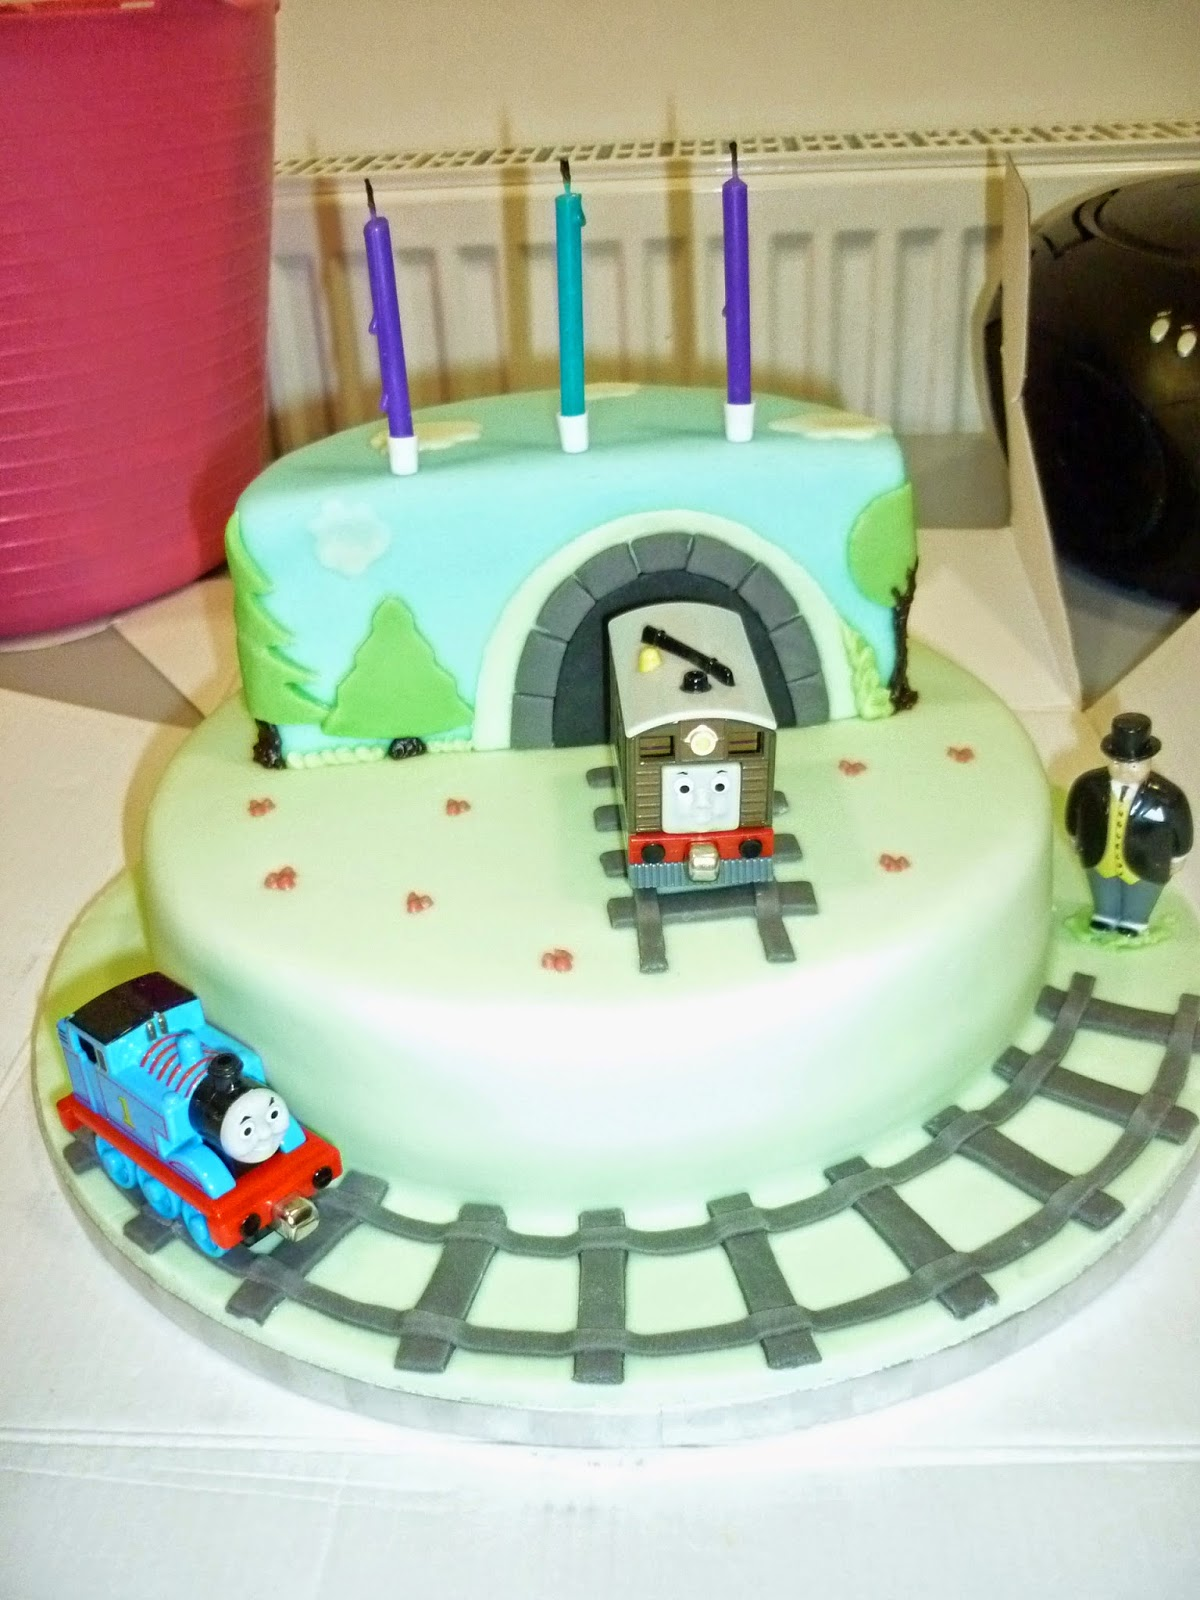 All Sewn Up By Stacey Thomas The Tank Engine Birthday Cake And The